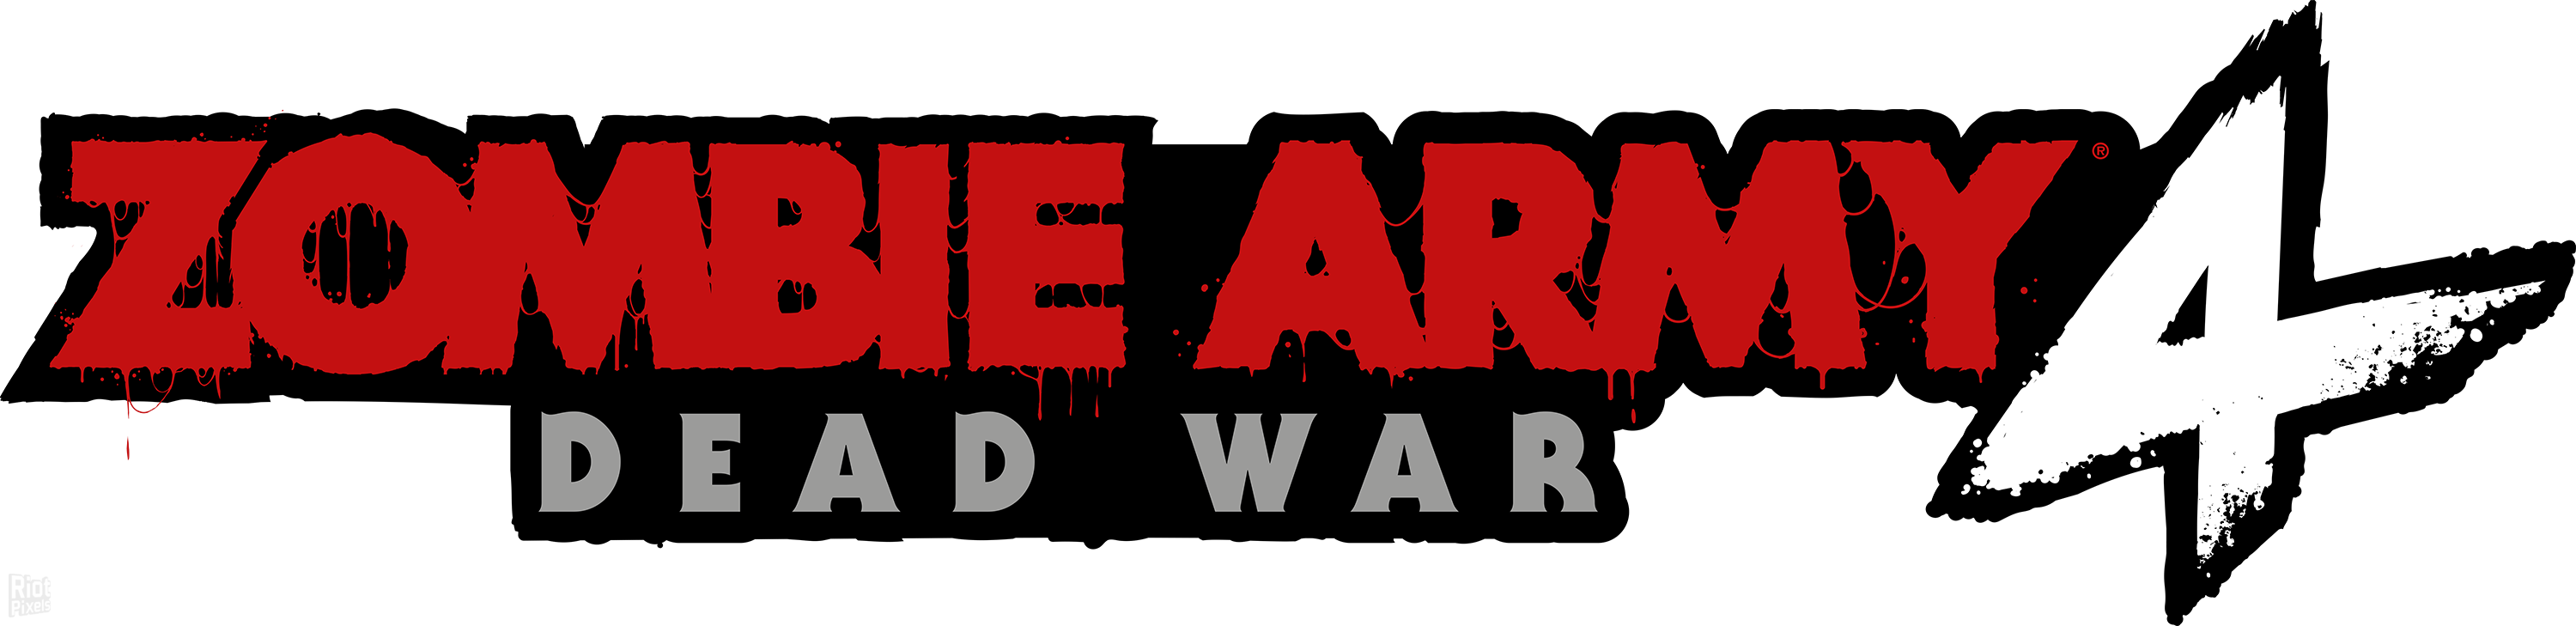 artwork.zombie-army-4-dead-war.3000x729.2019-06-12.4.png